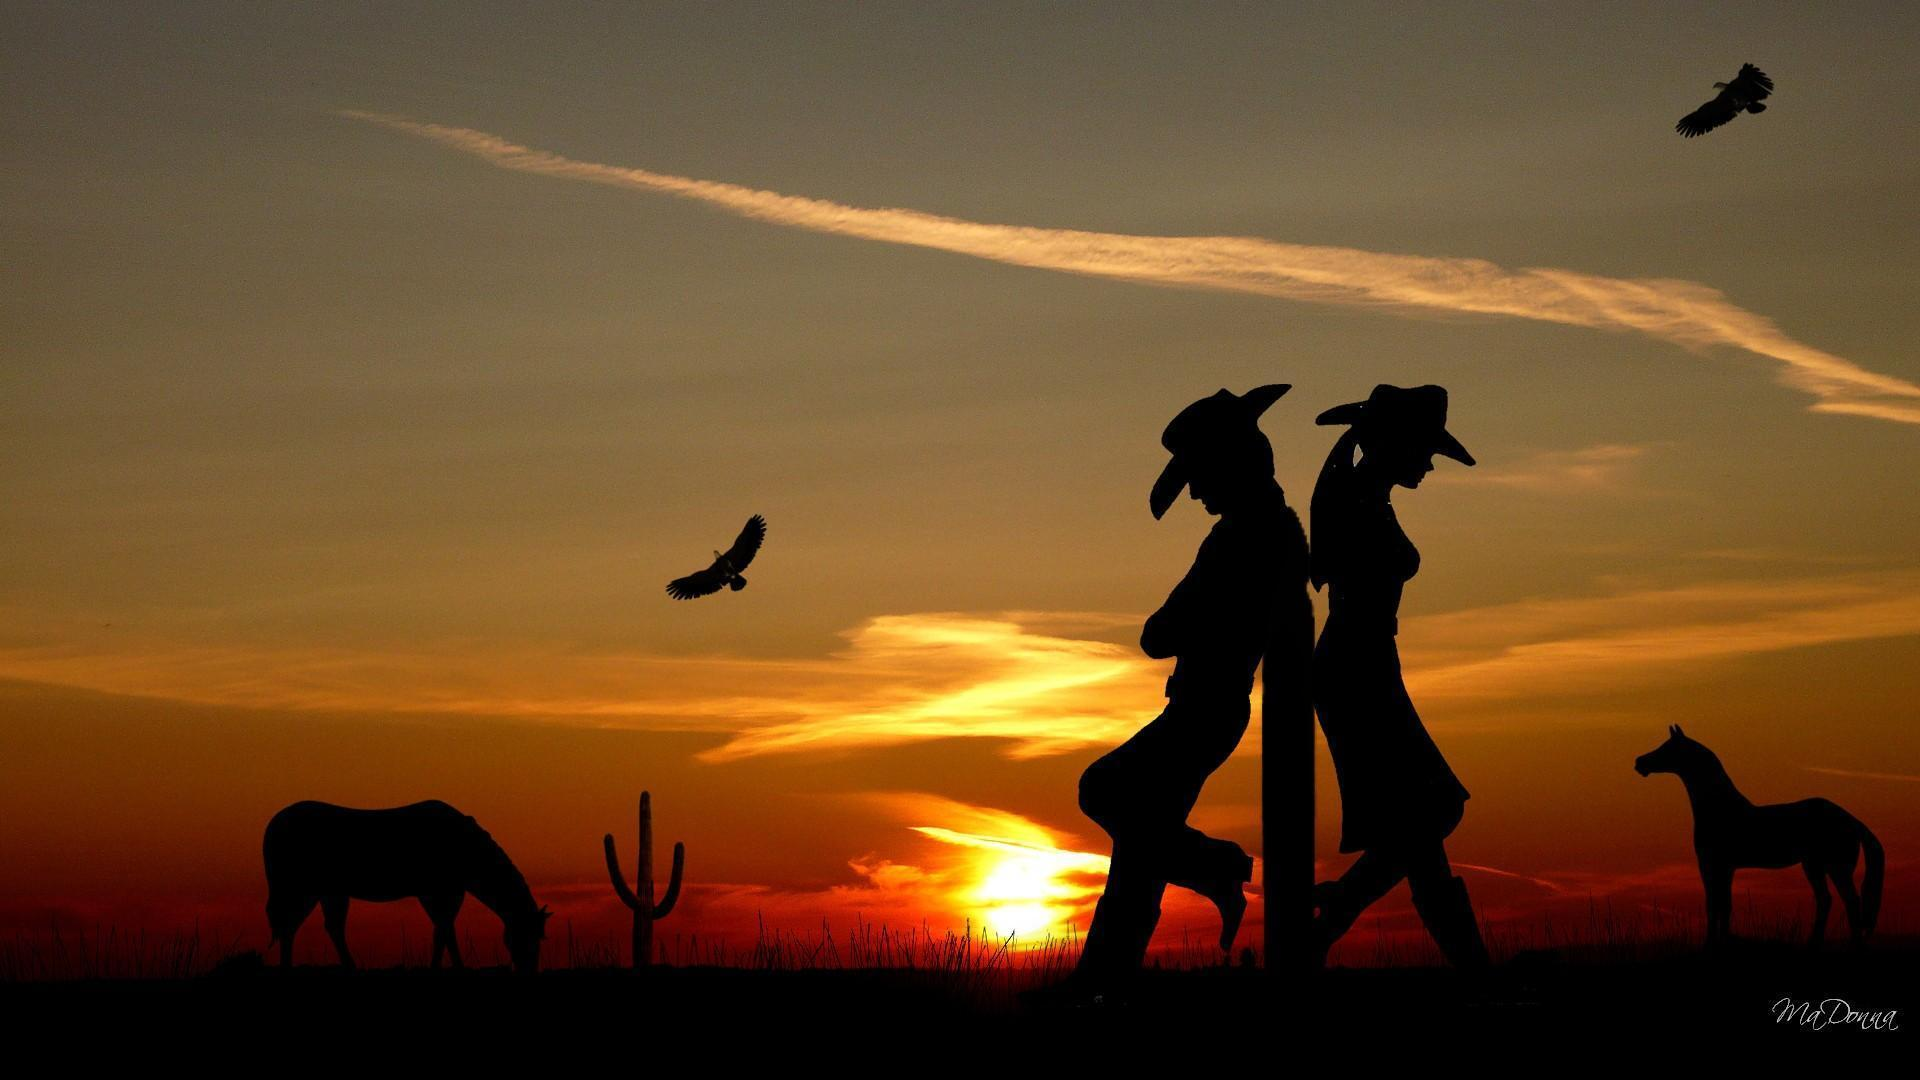 cowgirl silhouett wallpaper - photo #7